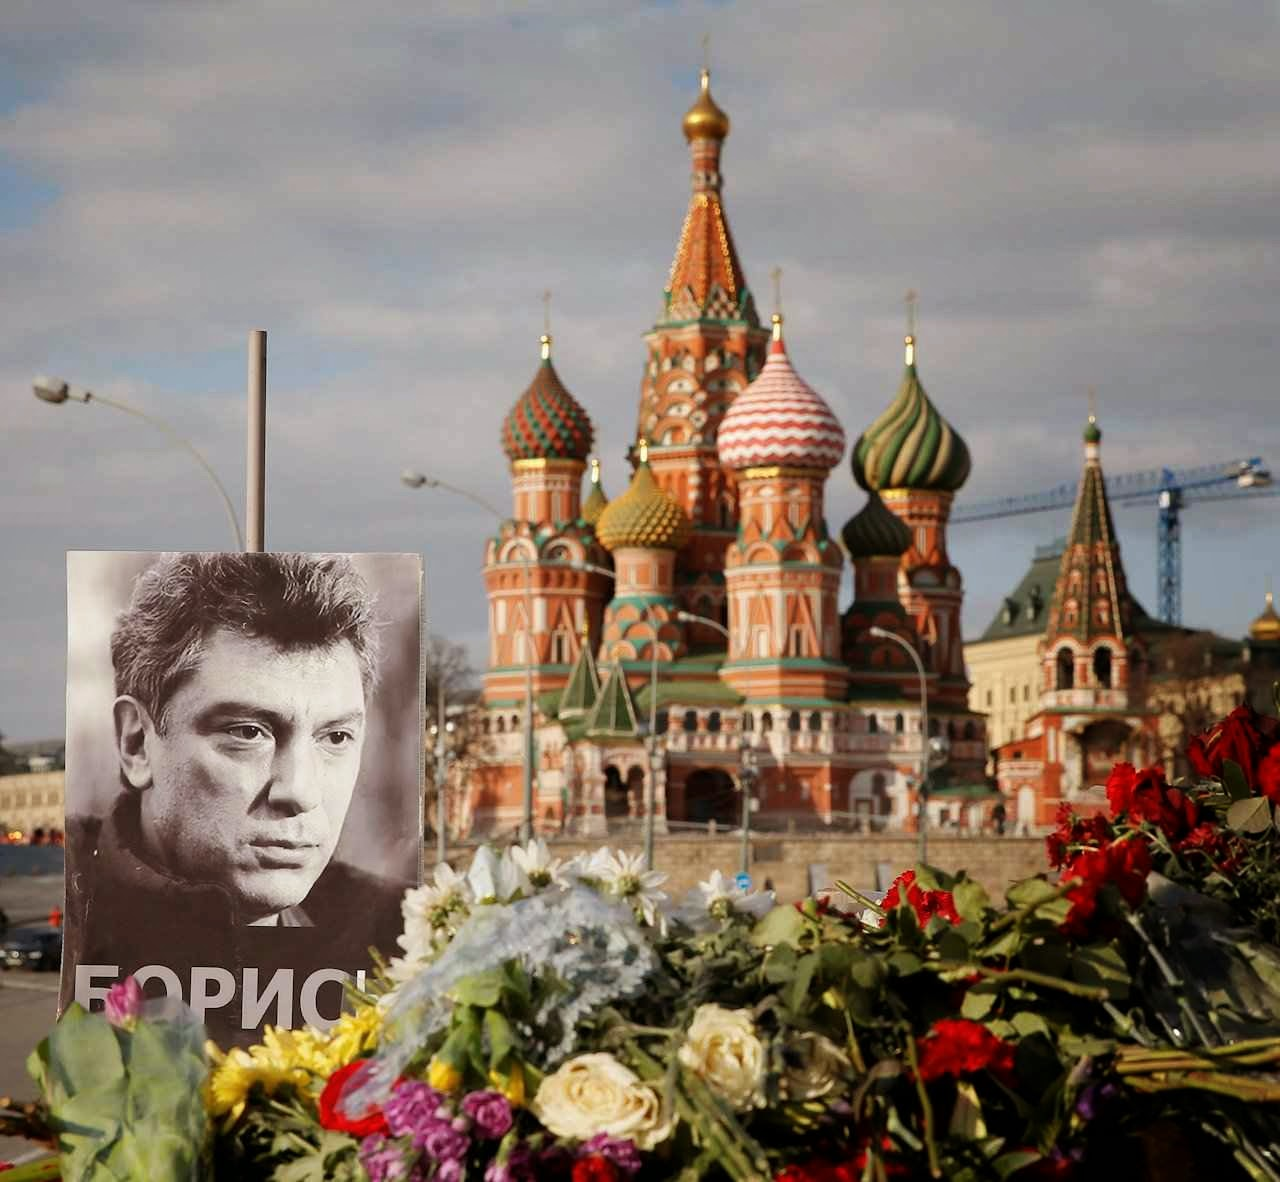 Retrato de Boris Nemtsov rodeado de flores  no local onde foi morto como morrem os opositores do regime